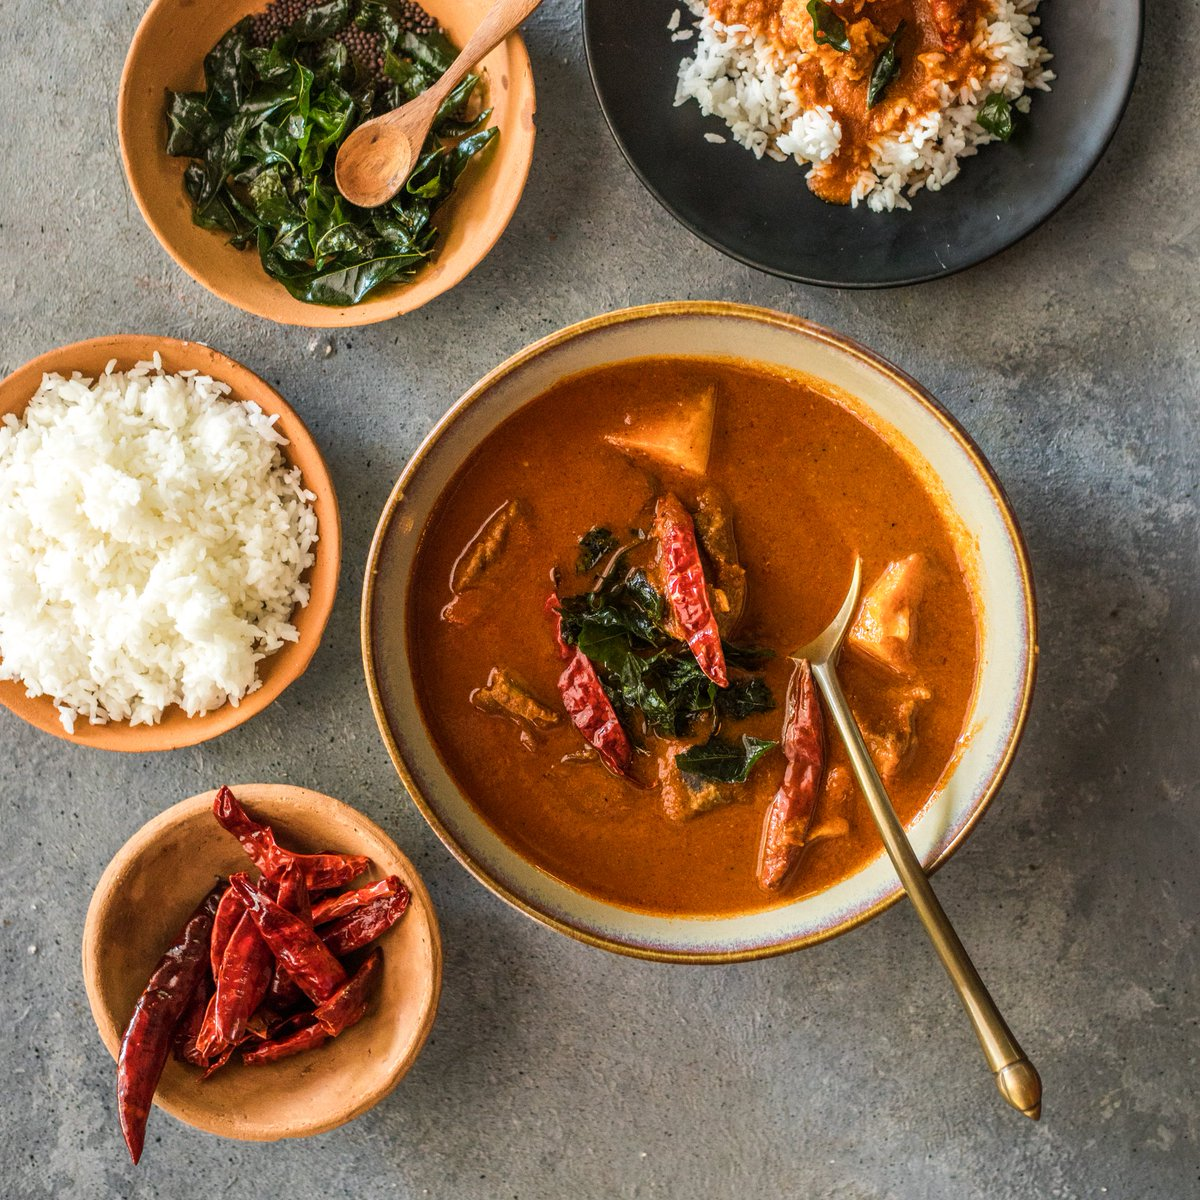 Listen up, foodies! Look no further for a delicious combination of great curries & flavourful beers - #InternationalCurryWeek has got you covered🥘 Follow the link to know more about partner restaurants near you - https://t.co/0gvyciVFsi . . . #ICW2019 #Bira91 #GotCurry https://t.co/g3rlmtqAU9